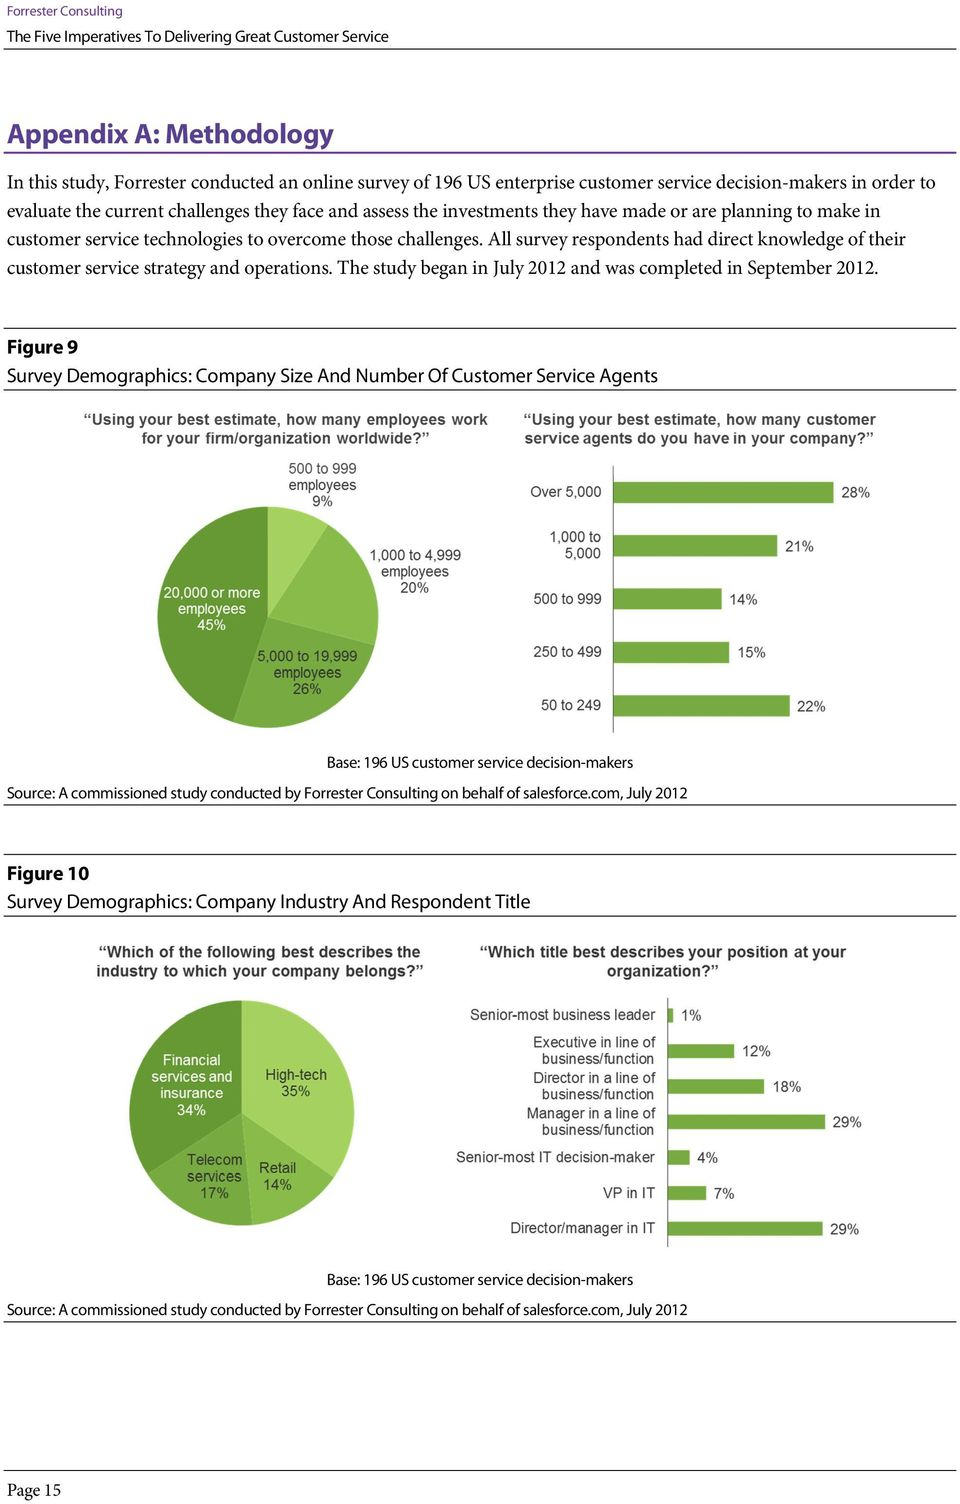 All survey respondents had direct knowledge of their customer service strategy and operations.